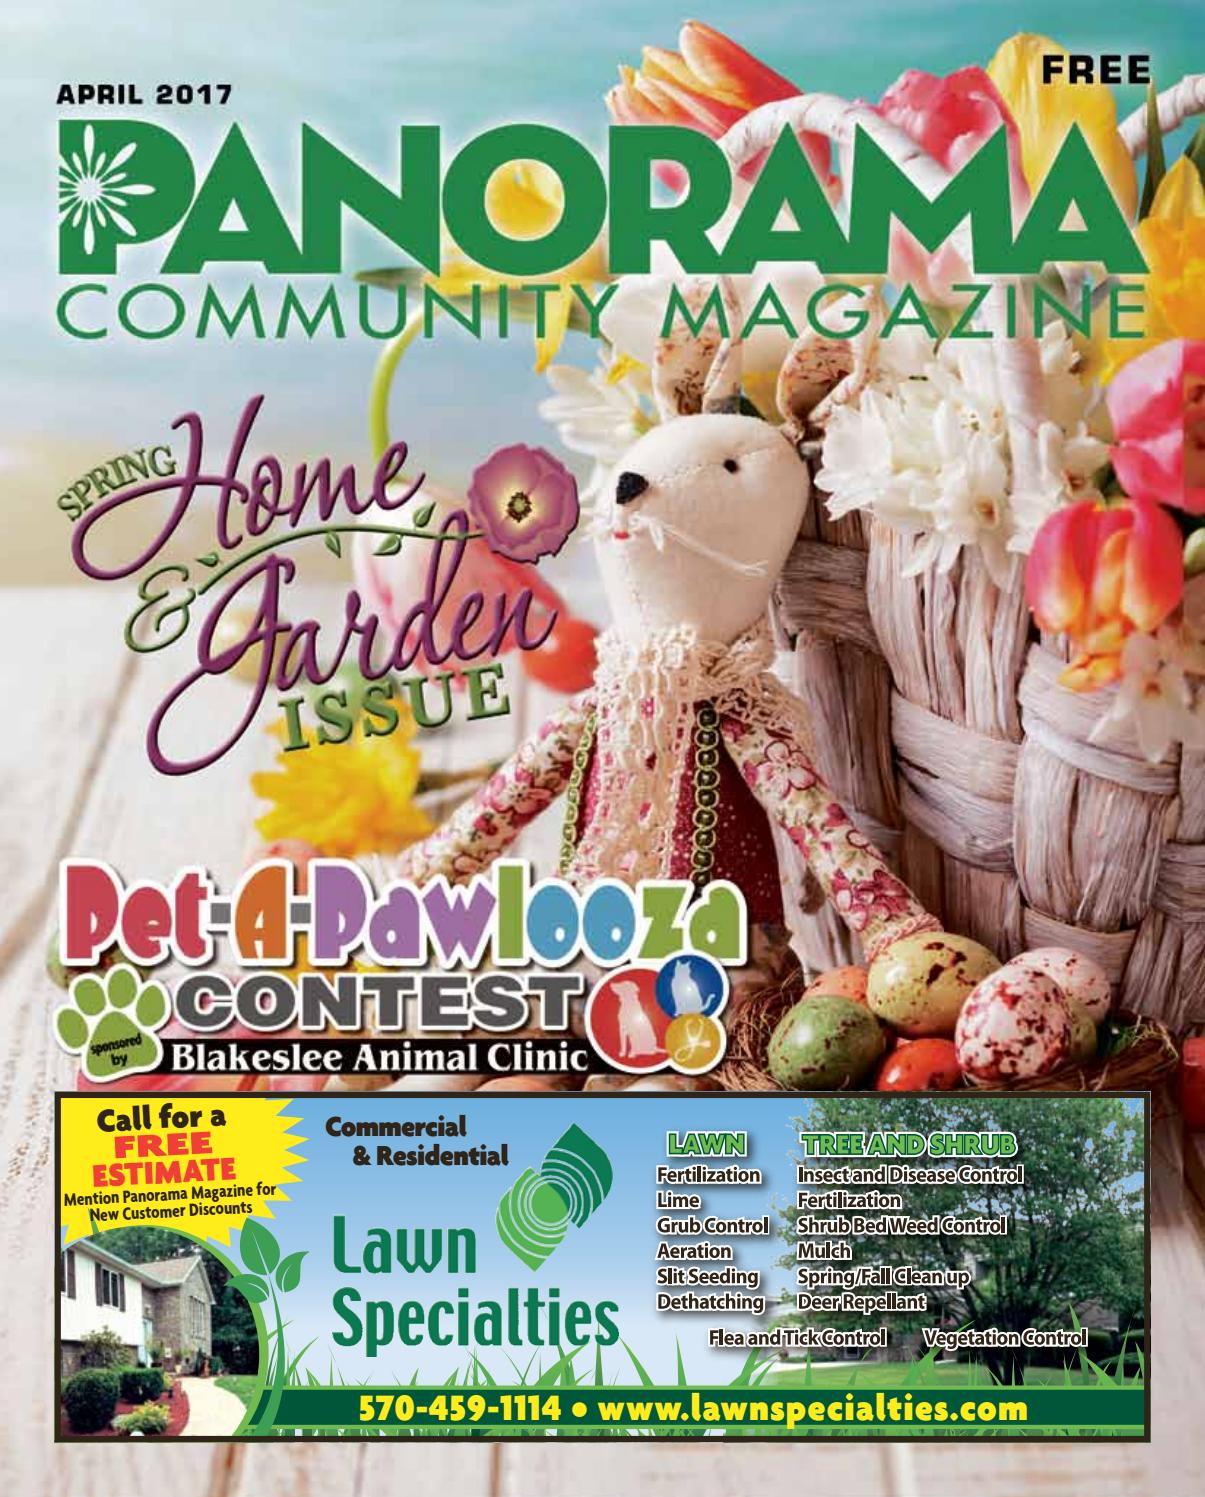 Kitchen gallery design center north broad street west hazleton pa - Panorama Community Magazine April 2017 By Panorama Community Magazine Issuu